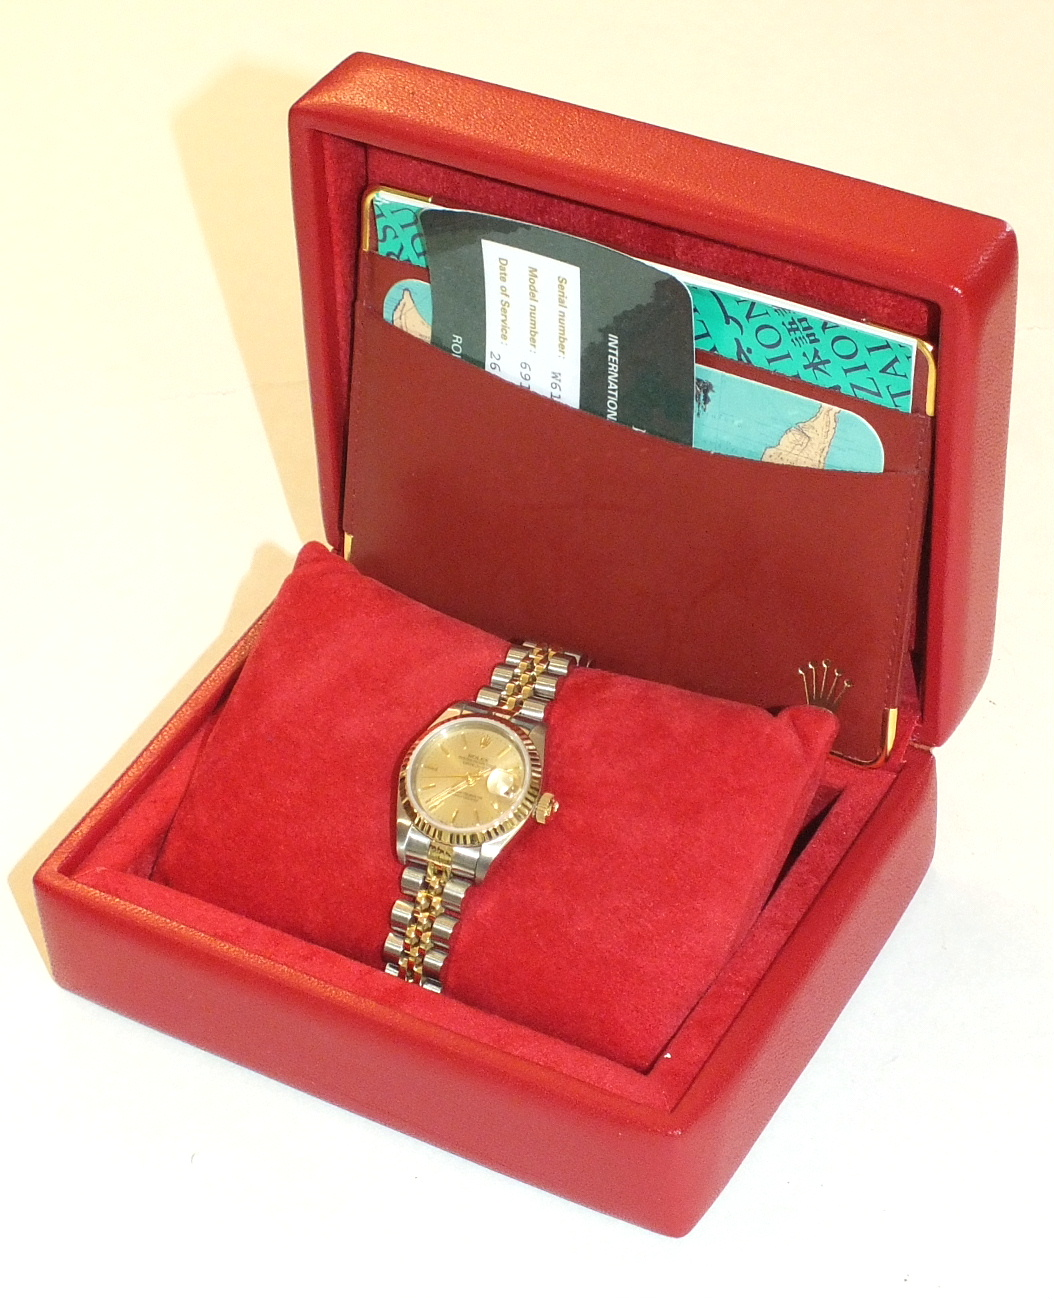 Lot 281 - Rolex, Oyster Perpetual Datejust chronometer ladies wrist watch, the gold dial with baton markers,